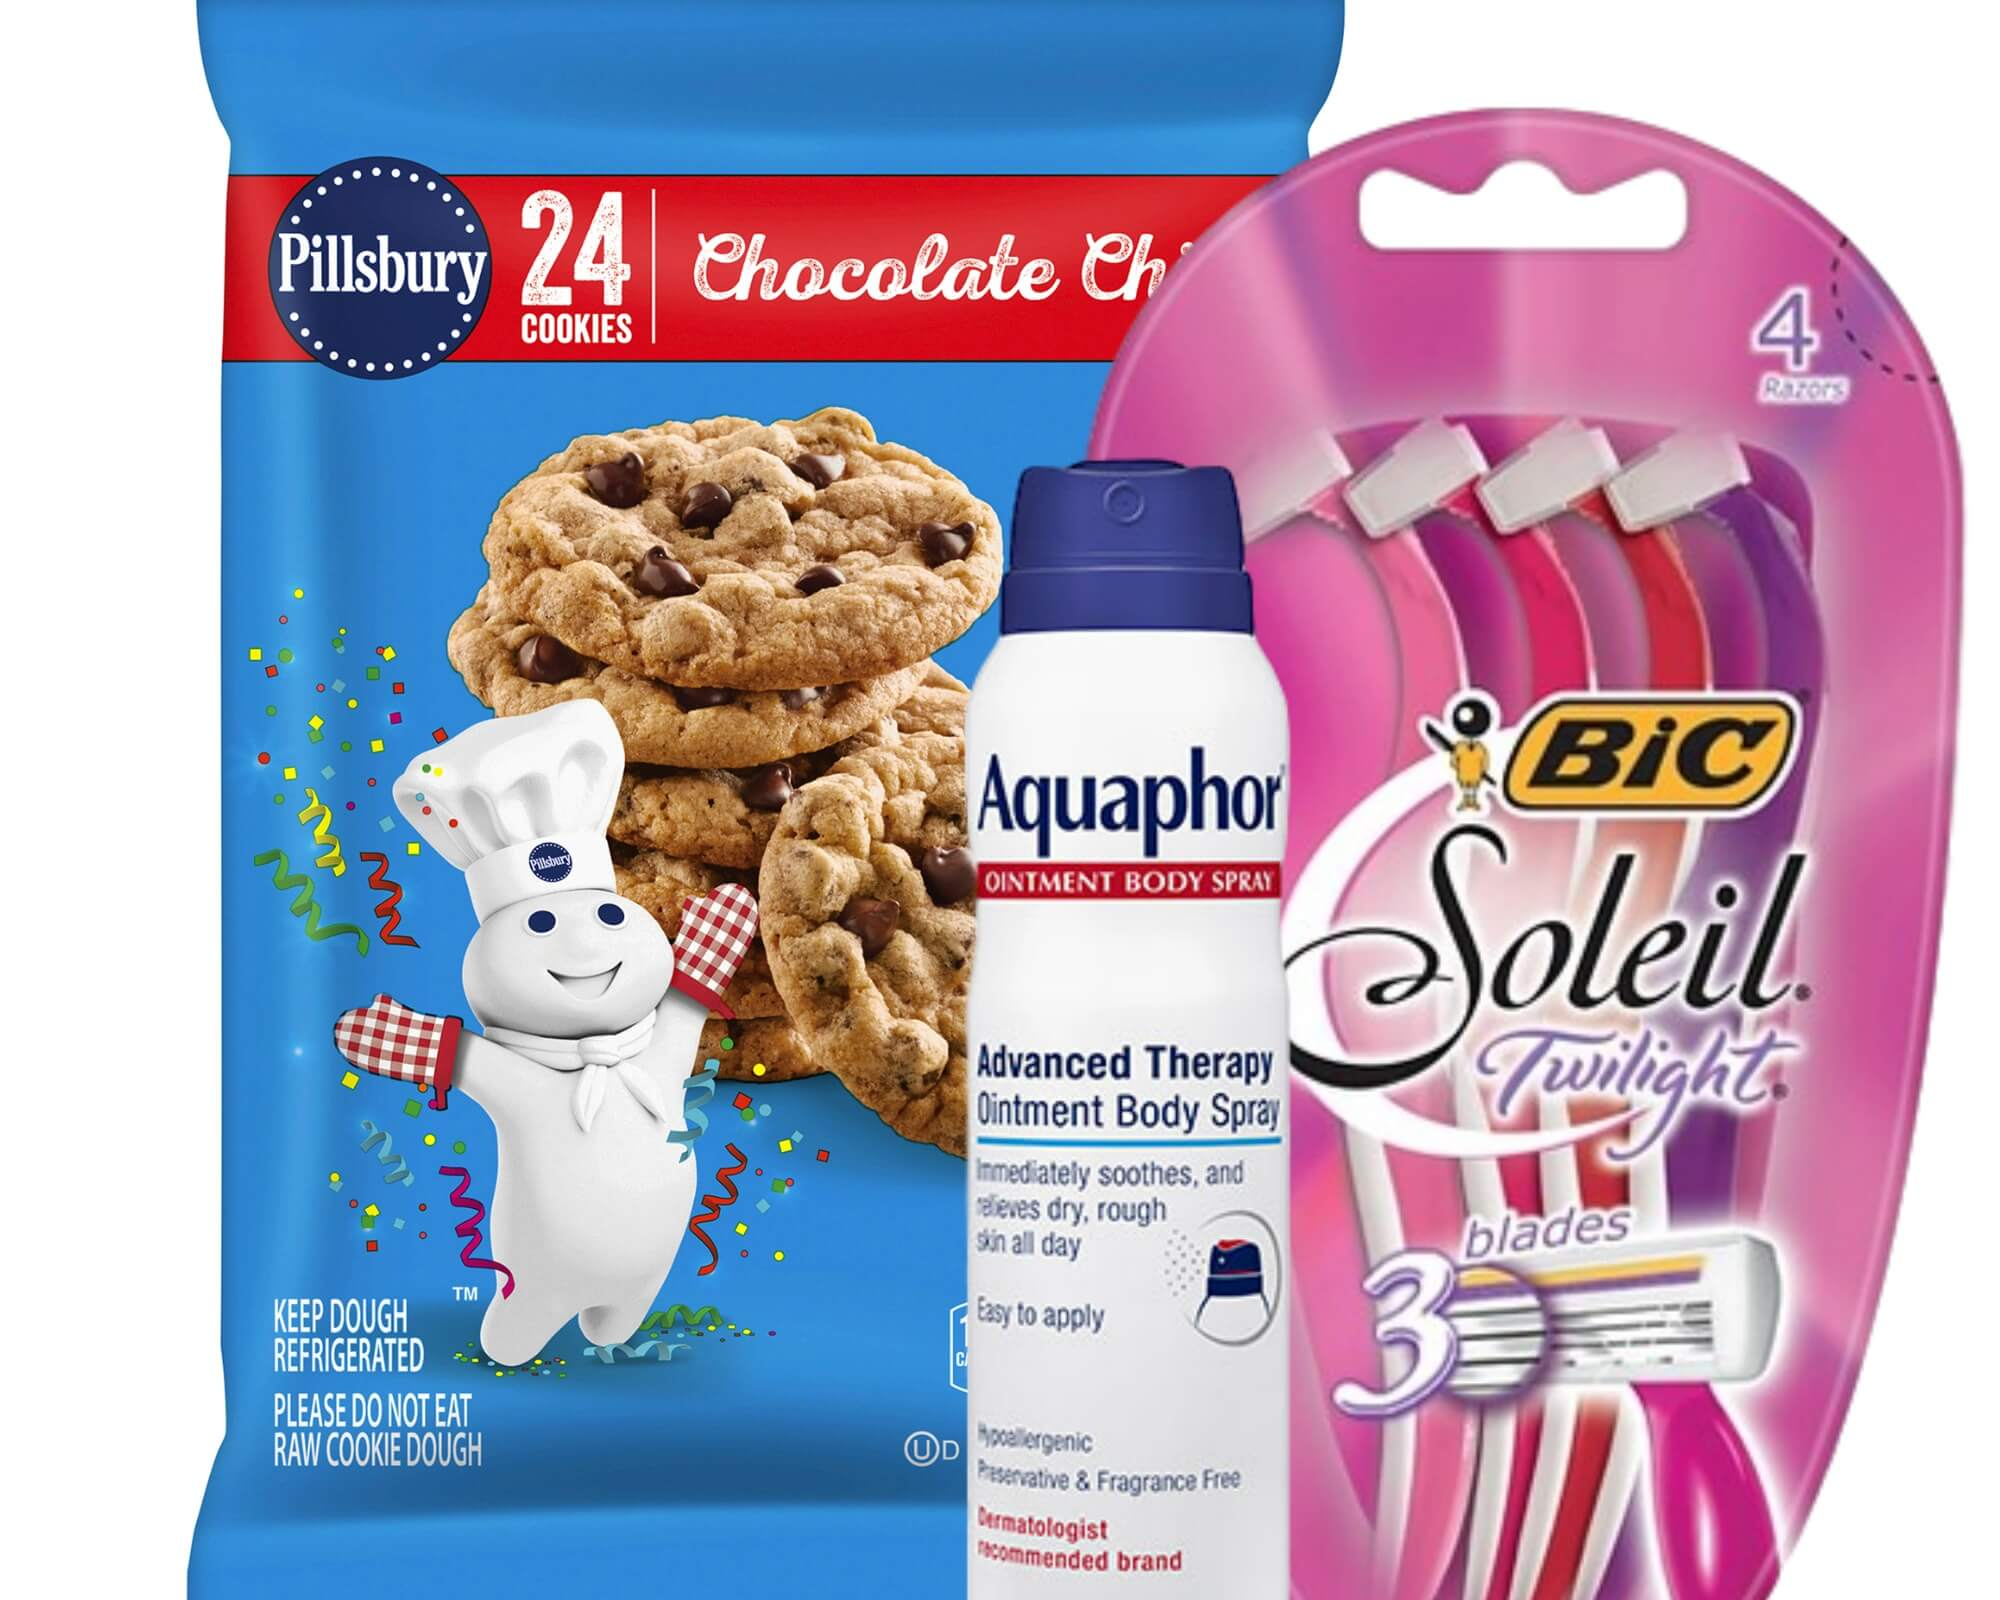 Today's Top New Coupons - Savings from General Mills, BIC, Aquaphor & More